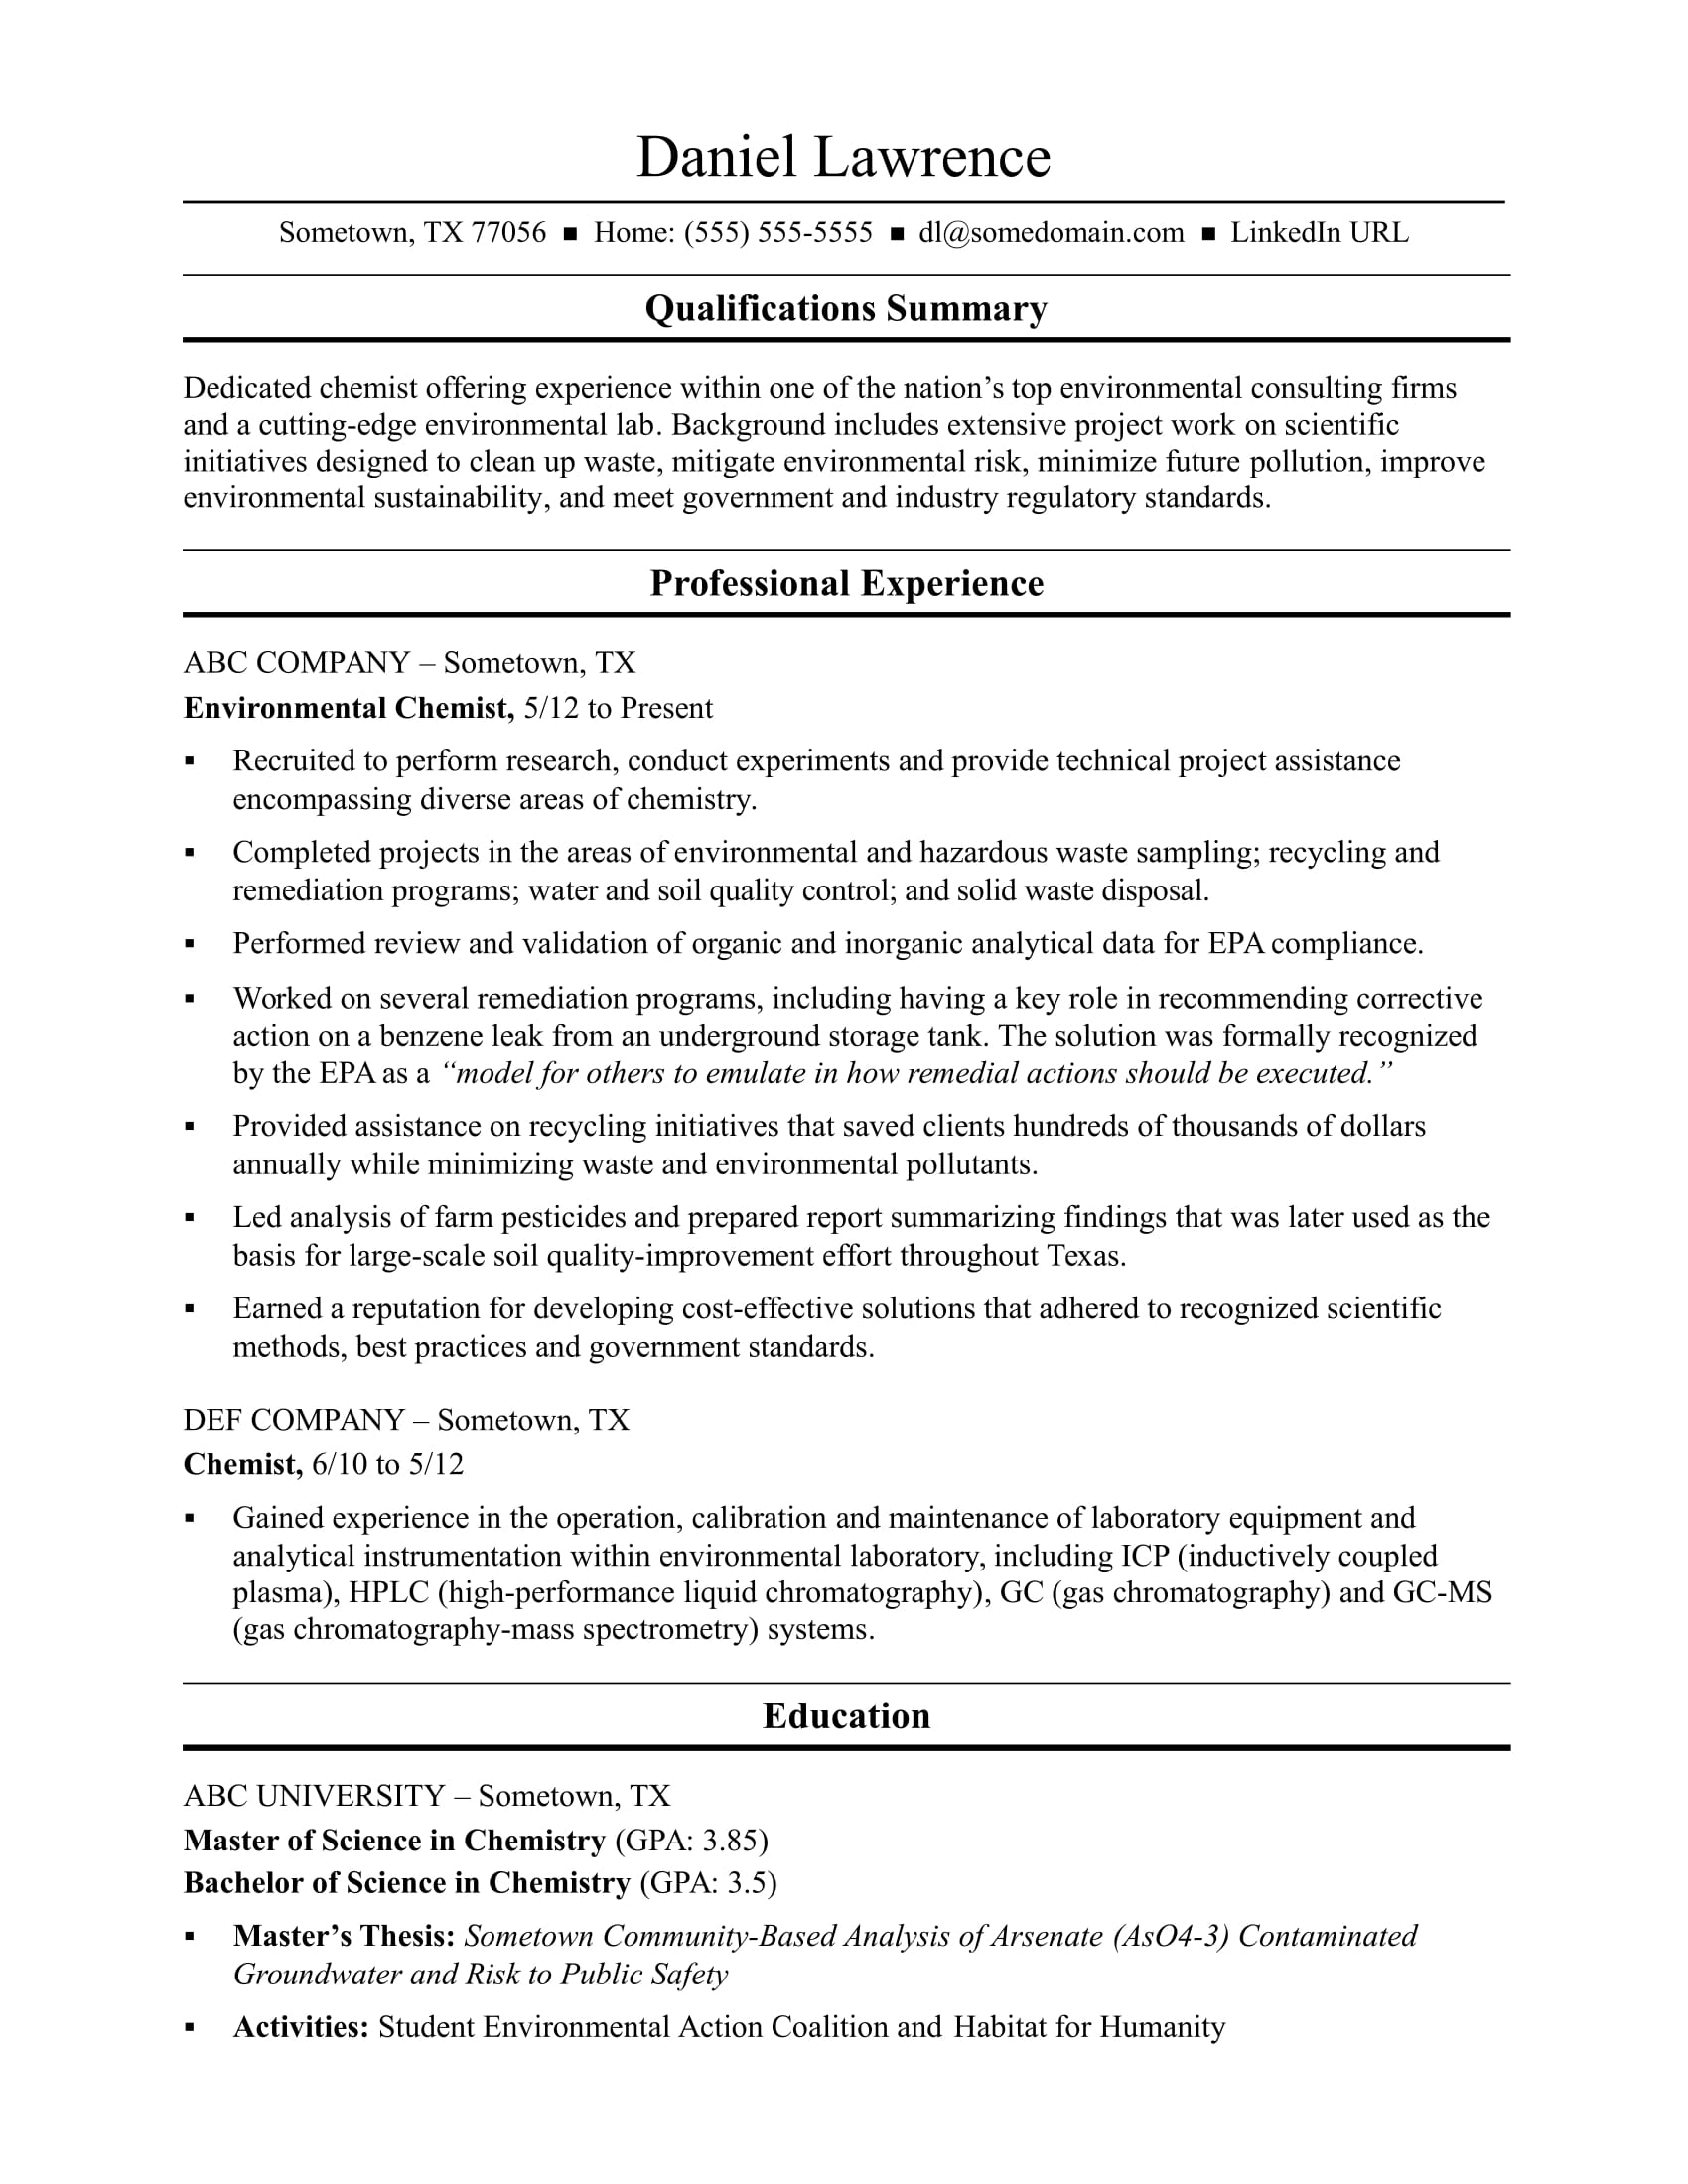 midlevel chemist resume sample